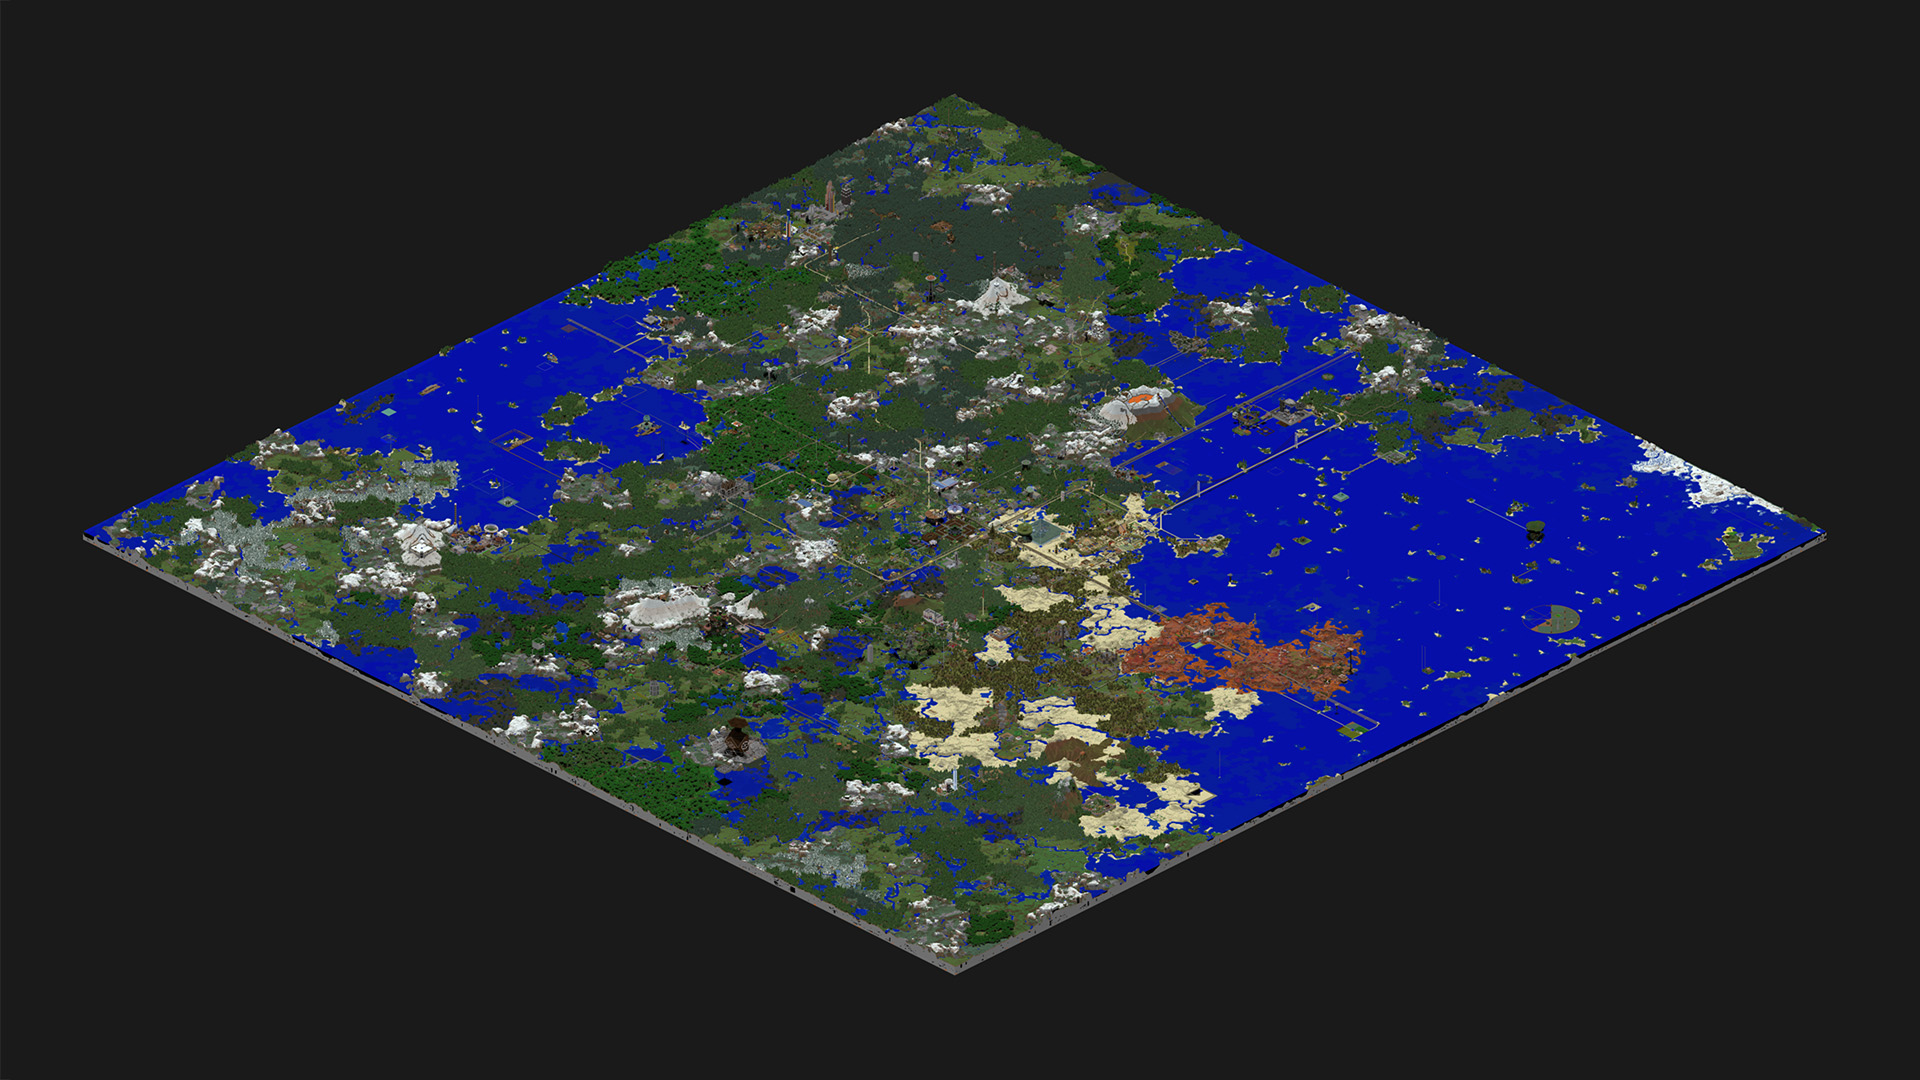 Cartograph view of Revision 17 of the Nerd.nu PvE server, located at p.nerd.nu. Click through to go to the full, zoomable cartograph.